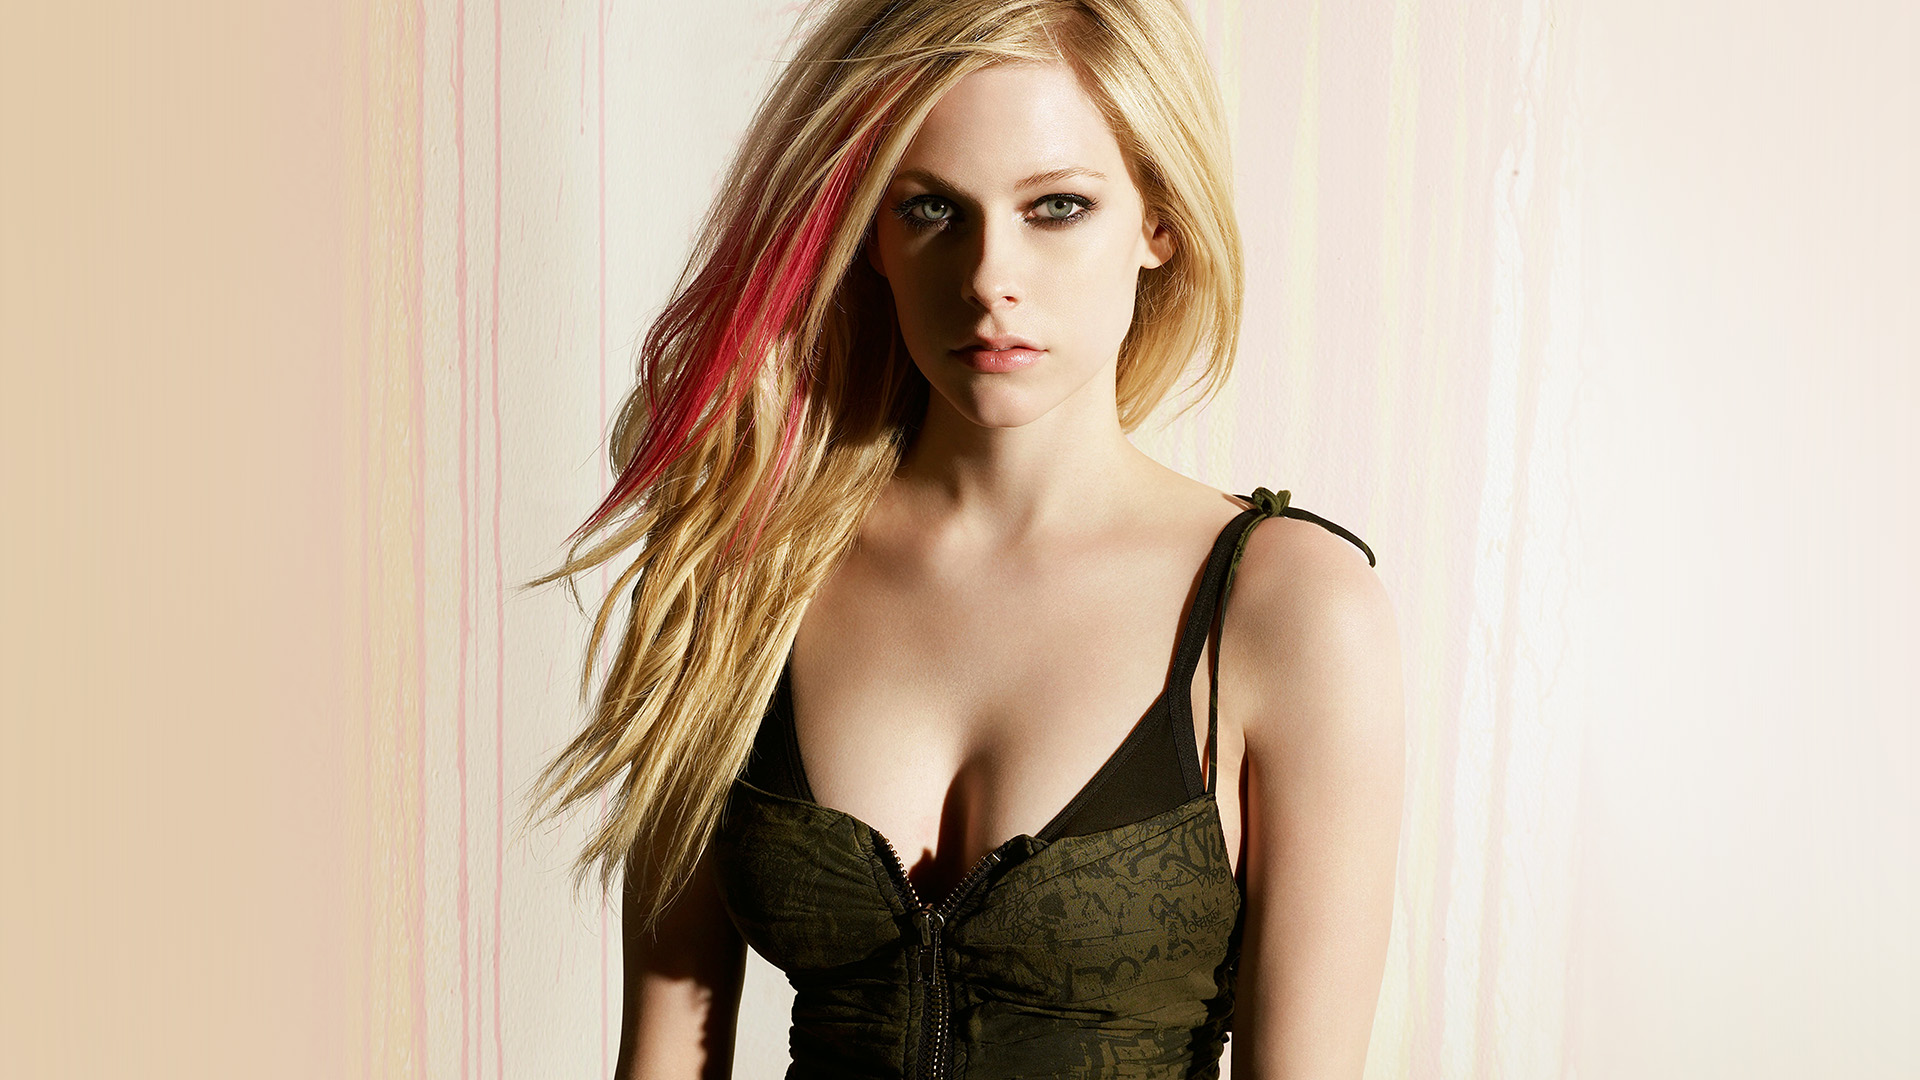 New Simple Girl Wallpaper Hp70 Avril Lavigne Girl Celebrity Singer Music Wallpaper